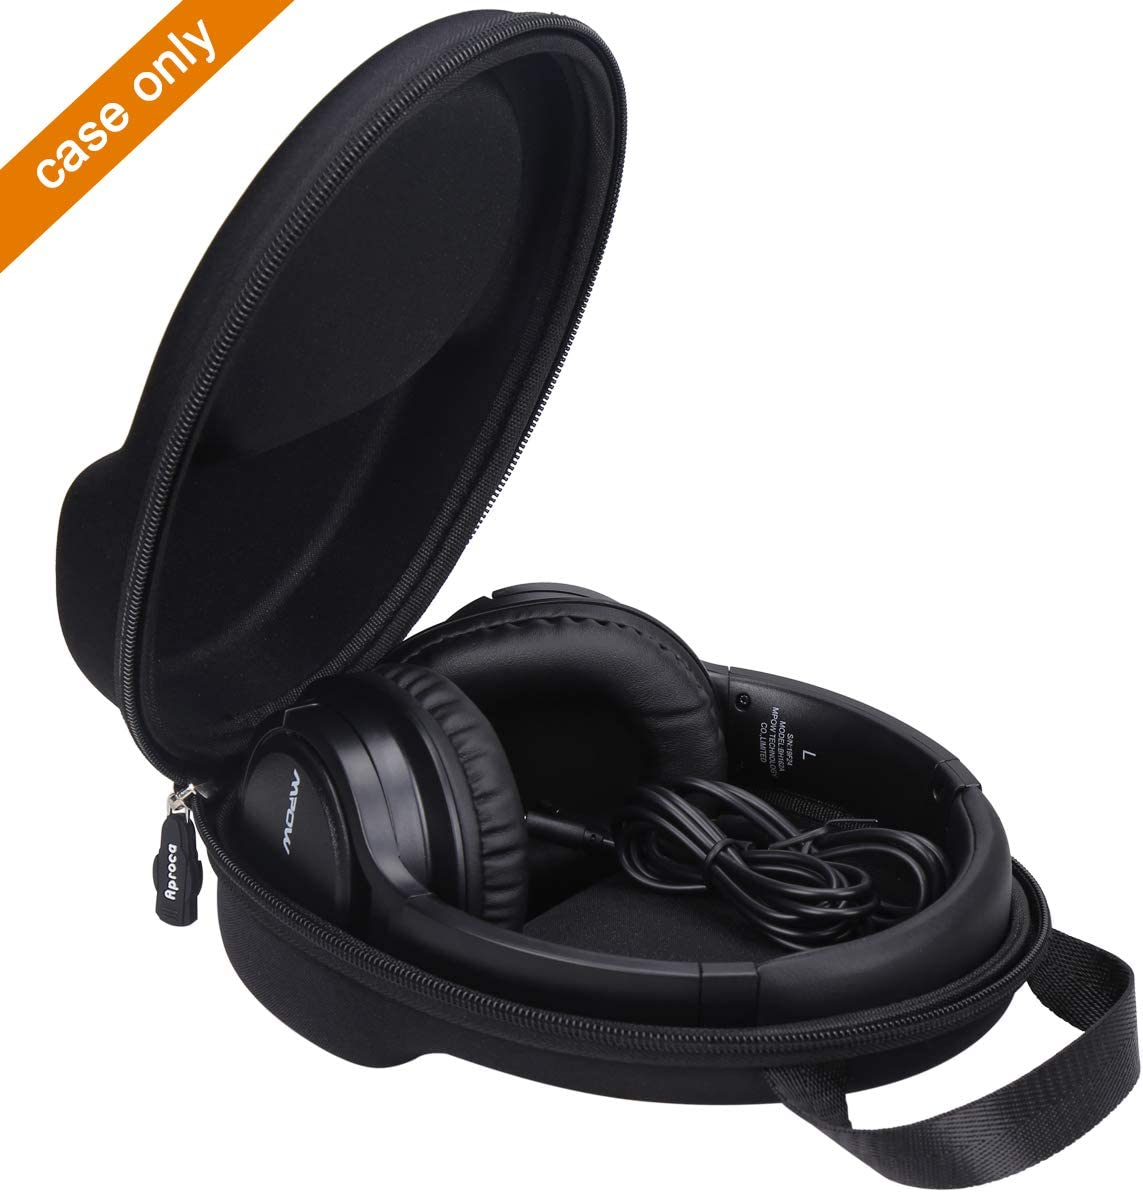 Aproca Hard Storage Travel Case for Mpow H7 Bluetooth Headphones Over Ear